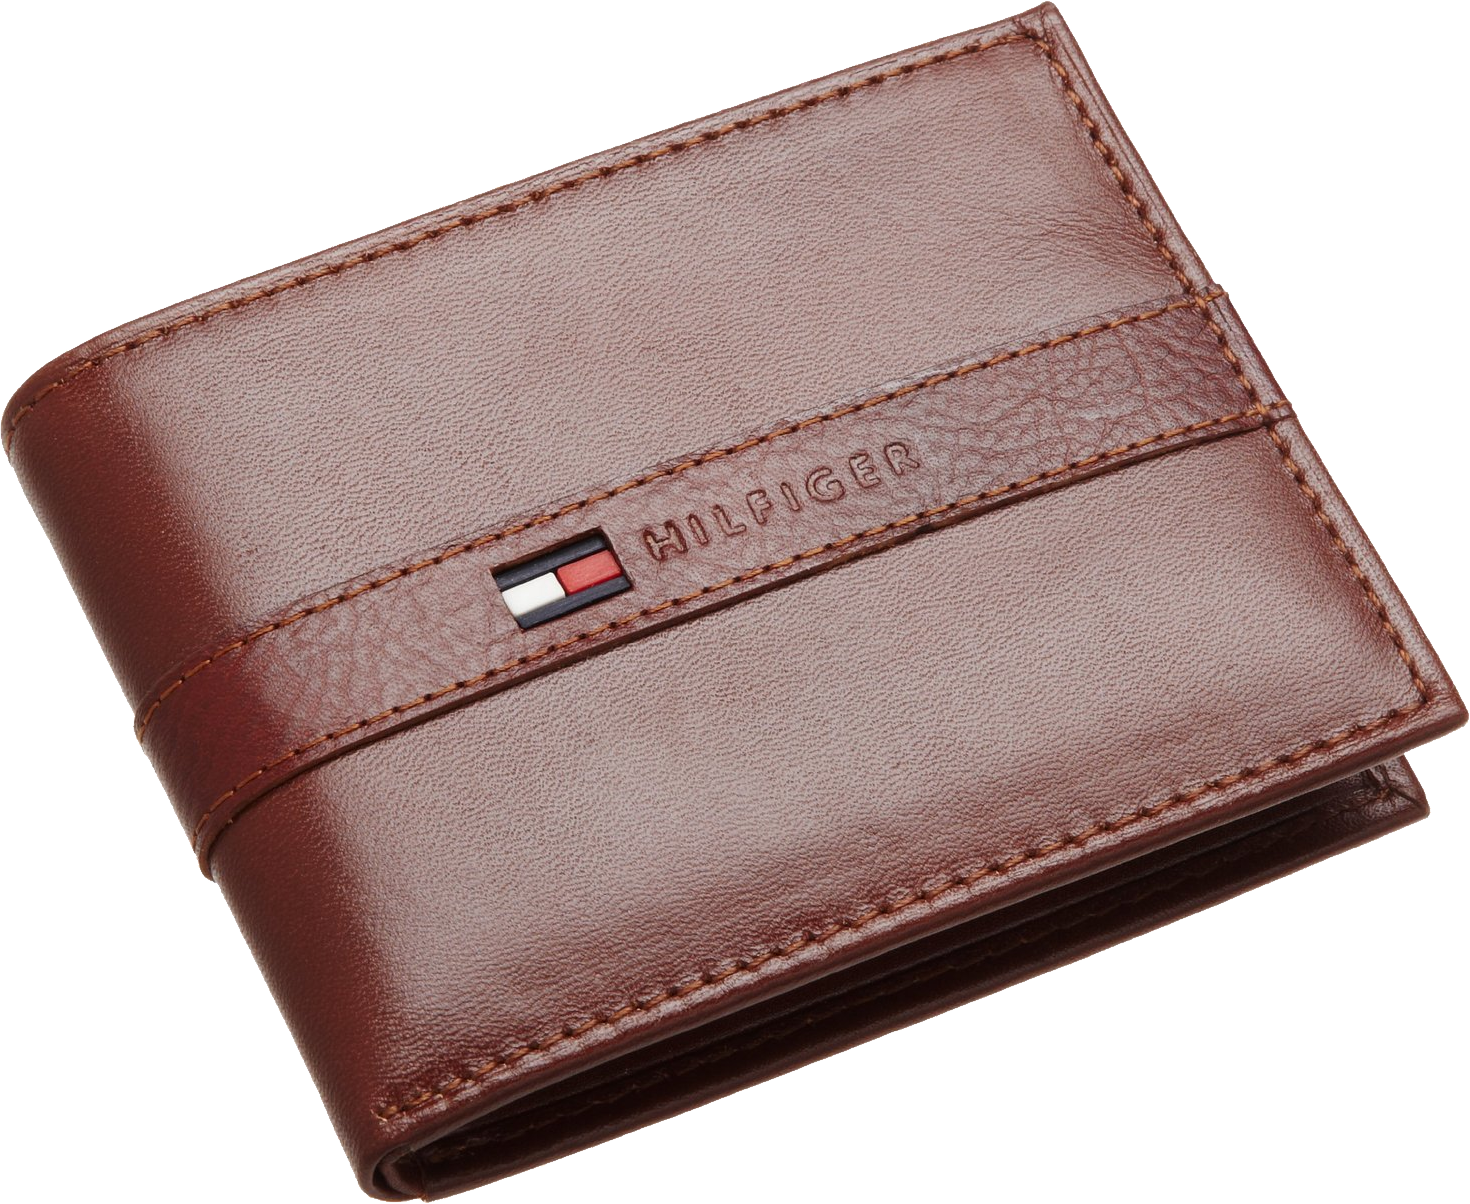 Leather wallet transparent png. Hq images pluspng brown